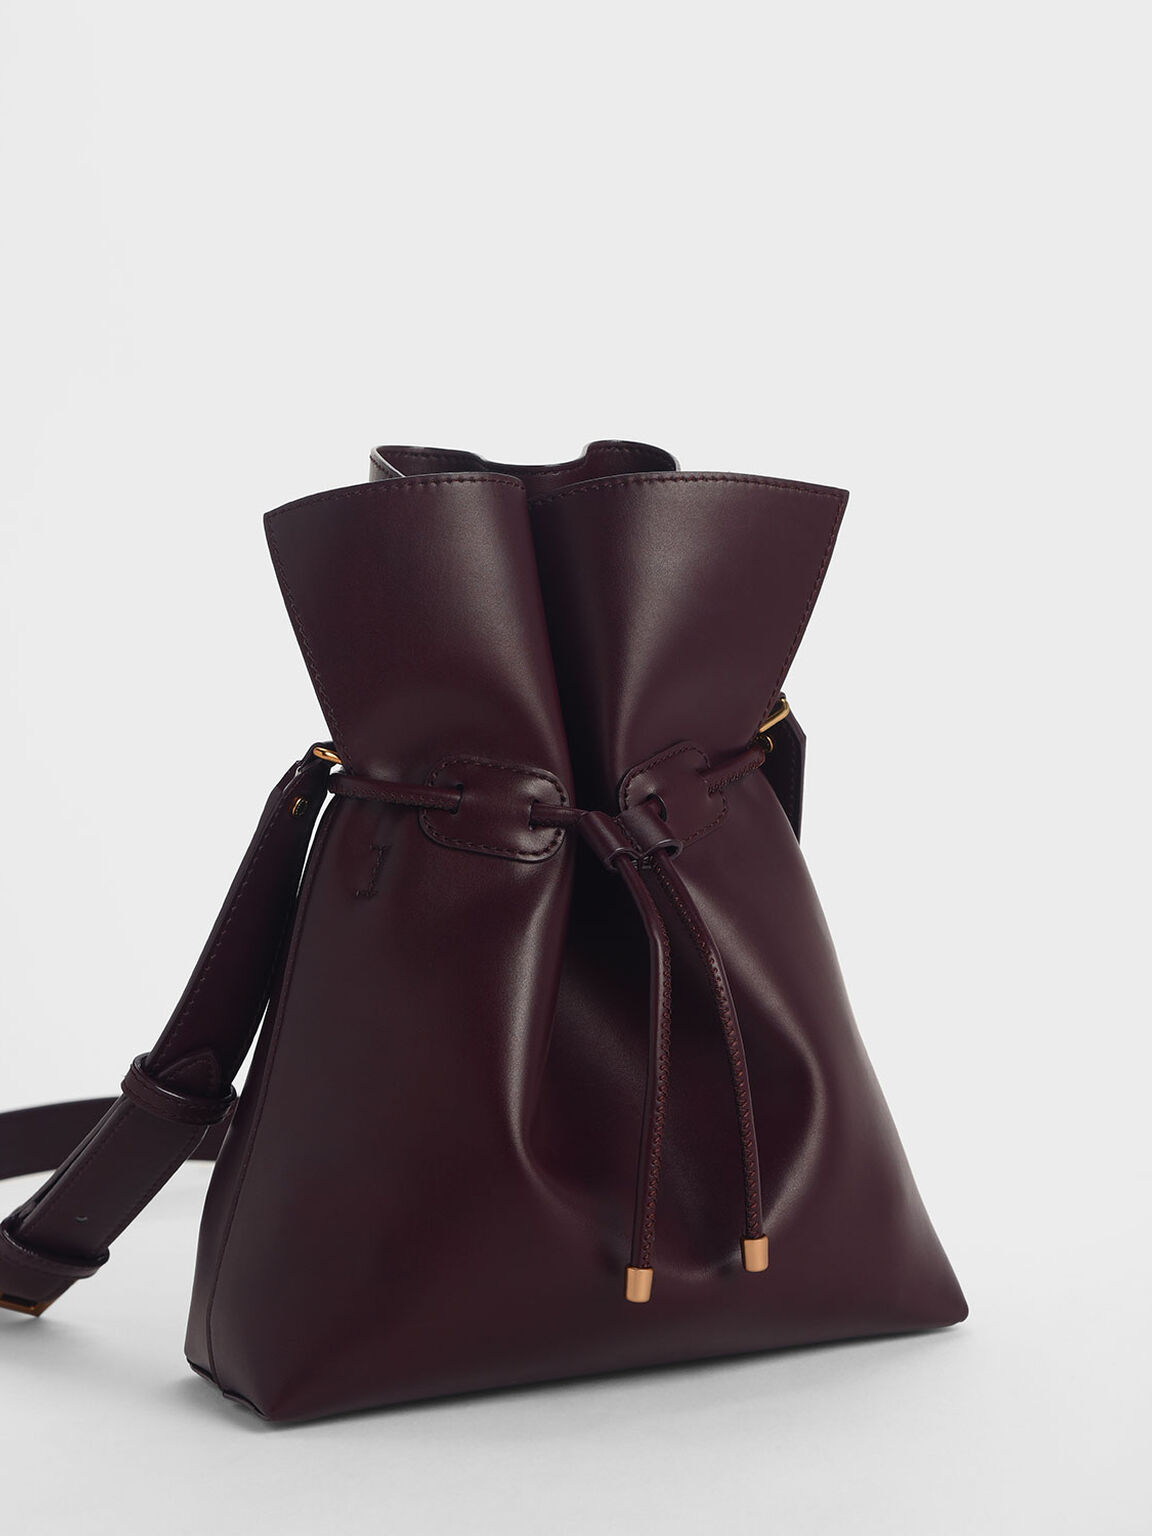 Drawstring Bucket Bag, Prune, hi-res